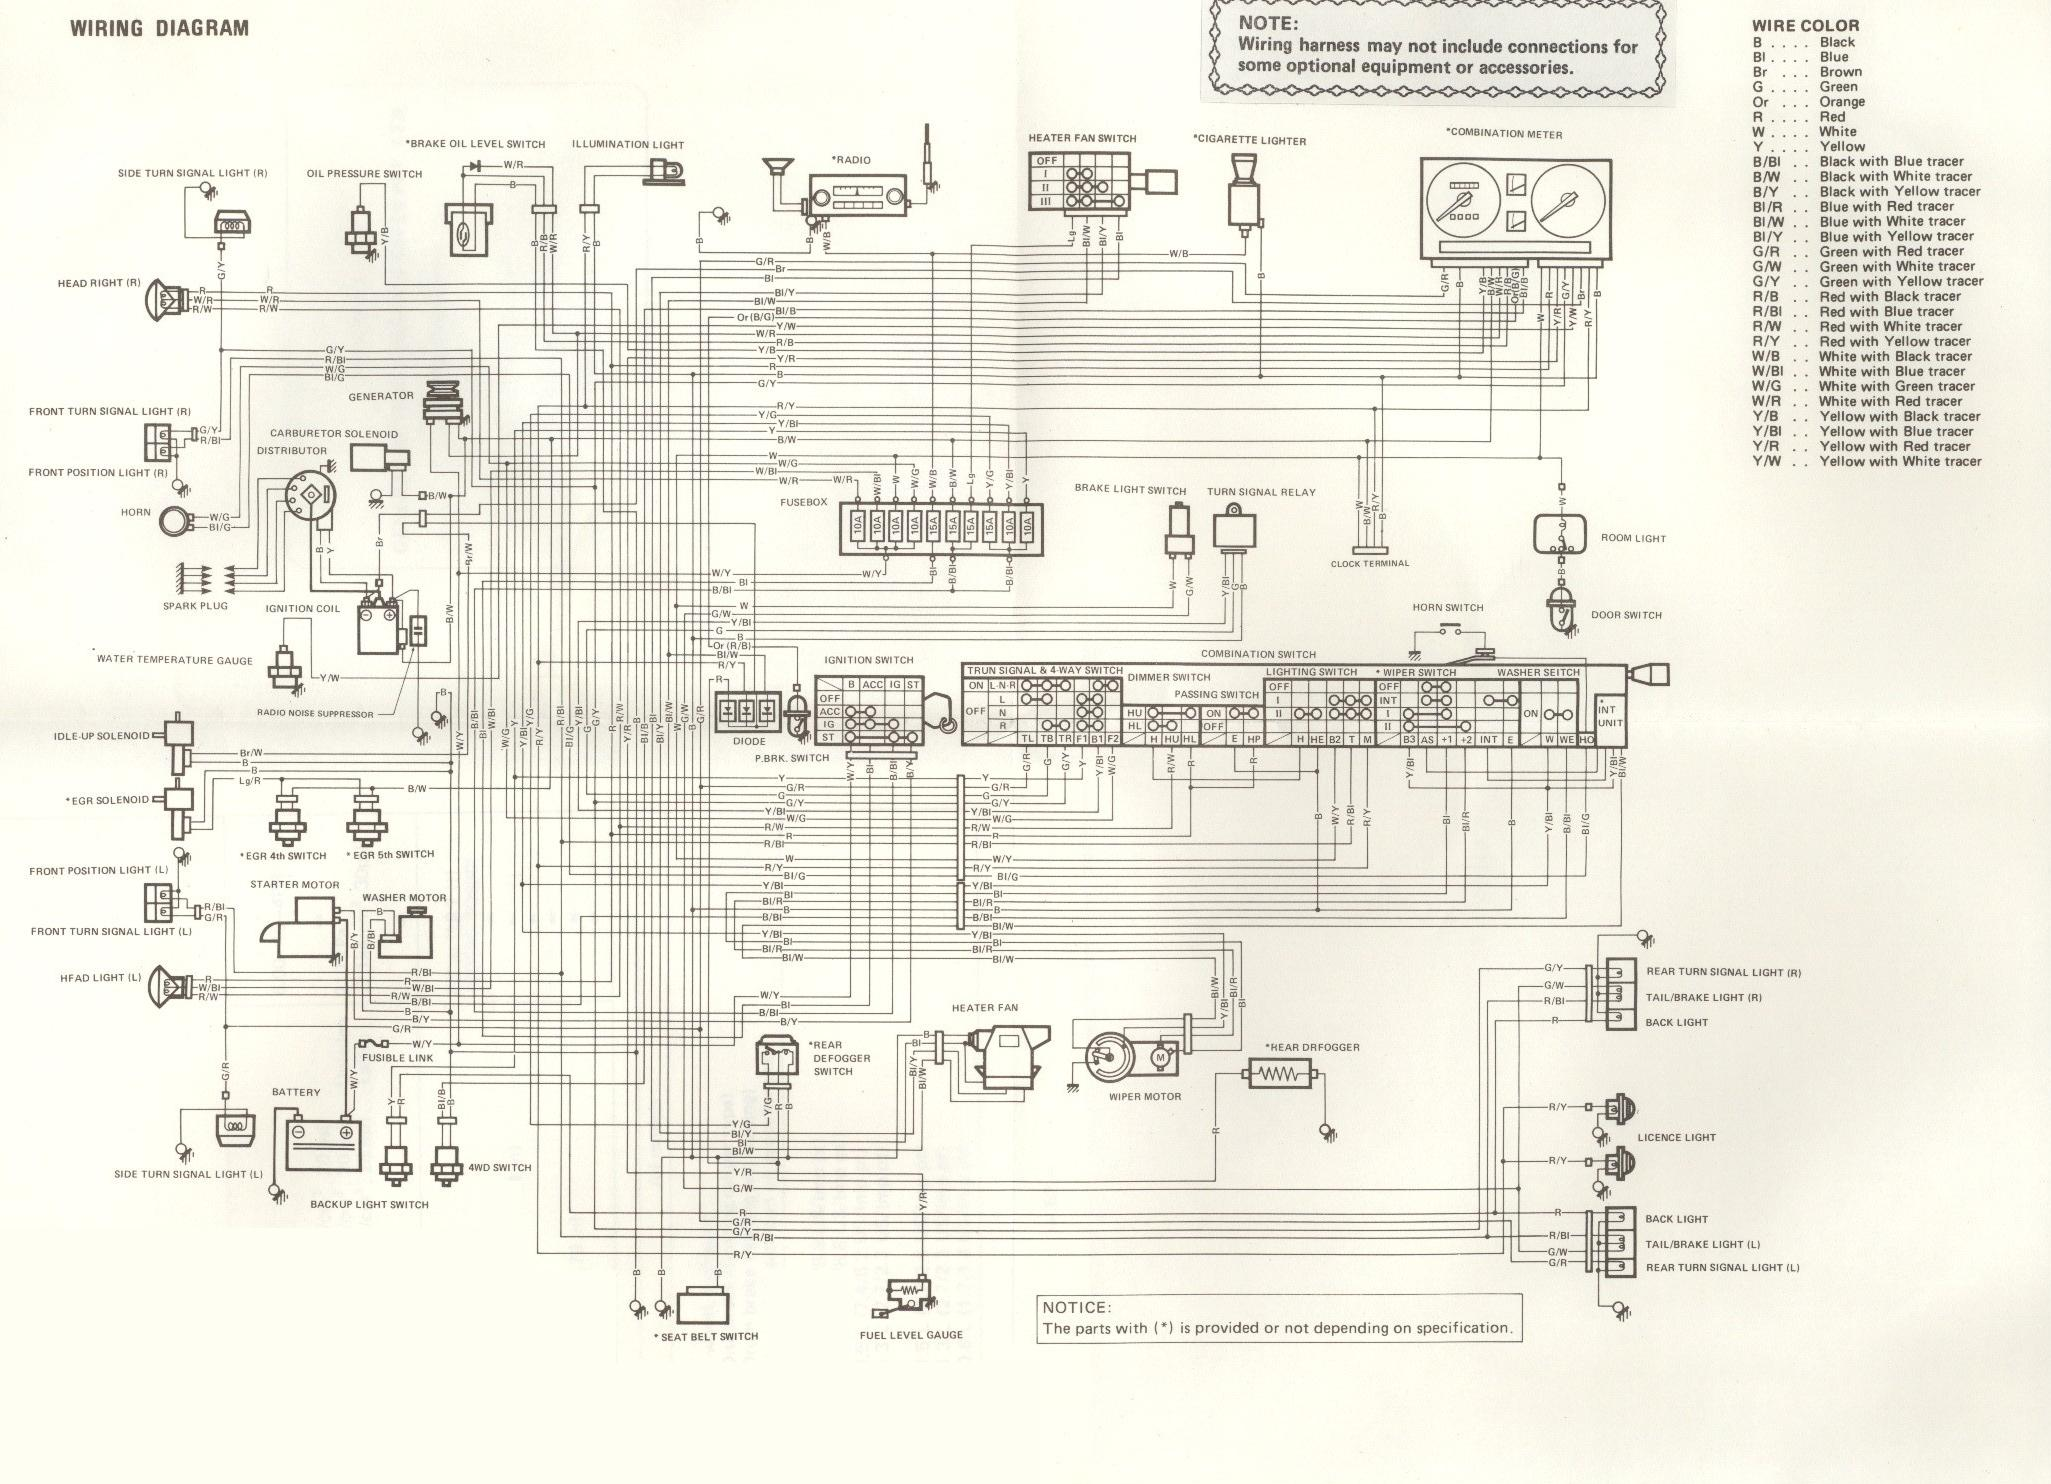 suzuki samurai wiringdiagram LJDoMre suzuki carry wiring diagram suzuki wiring diagrams instruction suzuki swift wiring diagram at alyssarenee.co